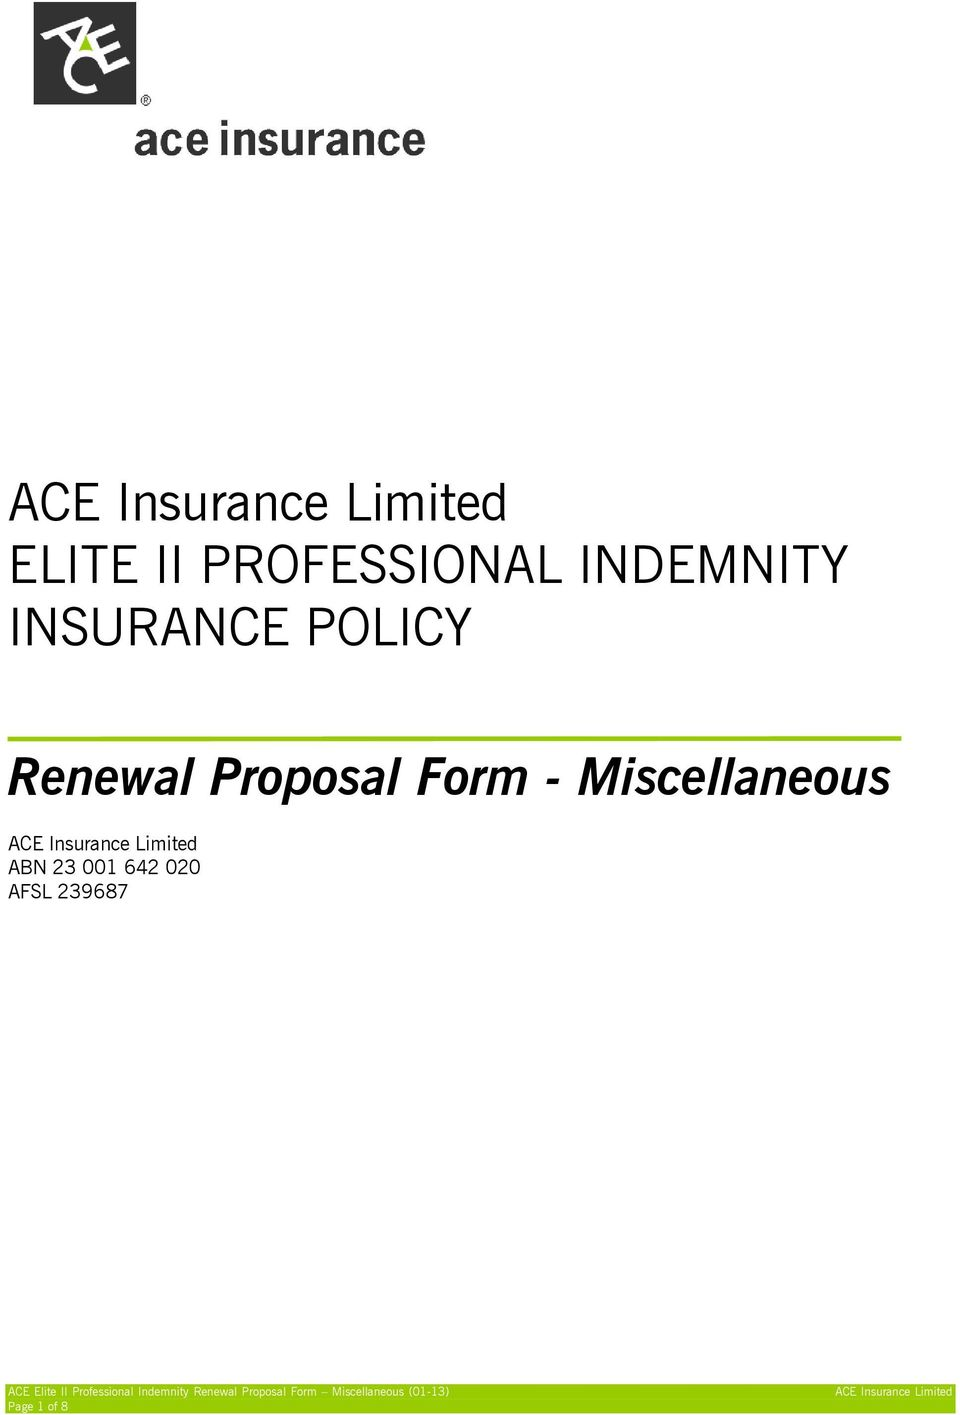 Proposal Form - Miscellaneous